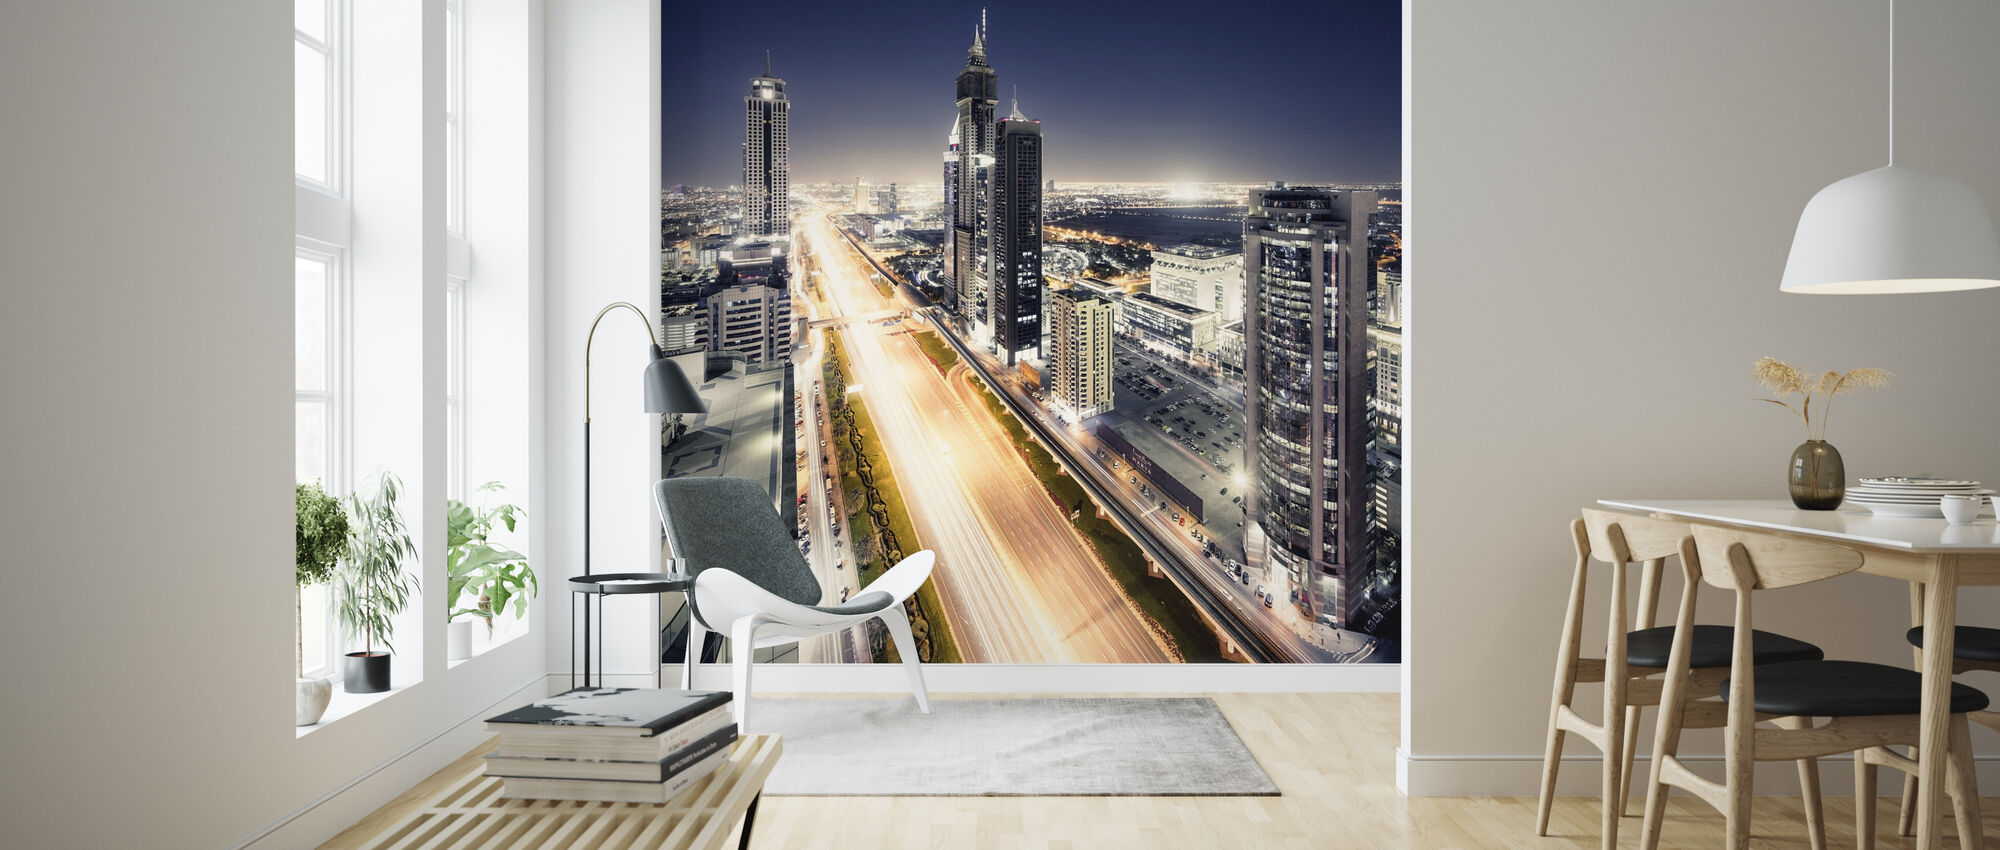 Dubai by Night - Wallpaper - Living Room